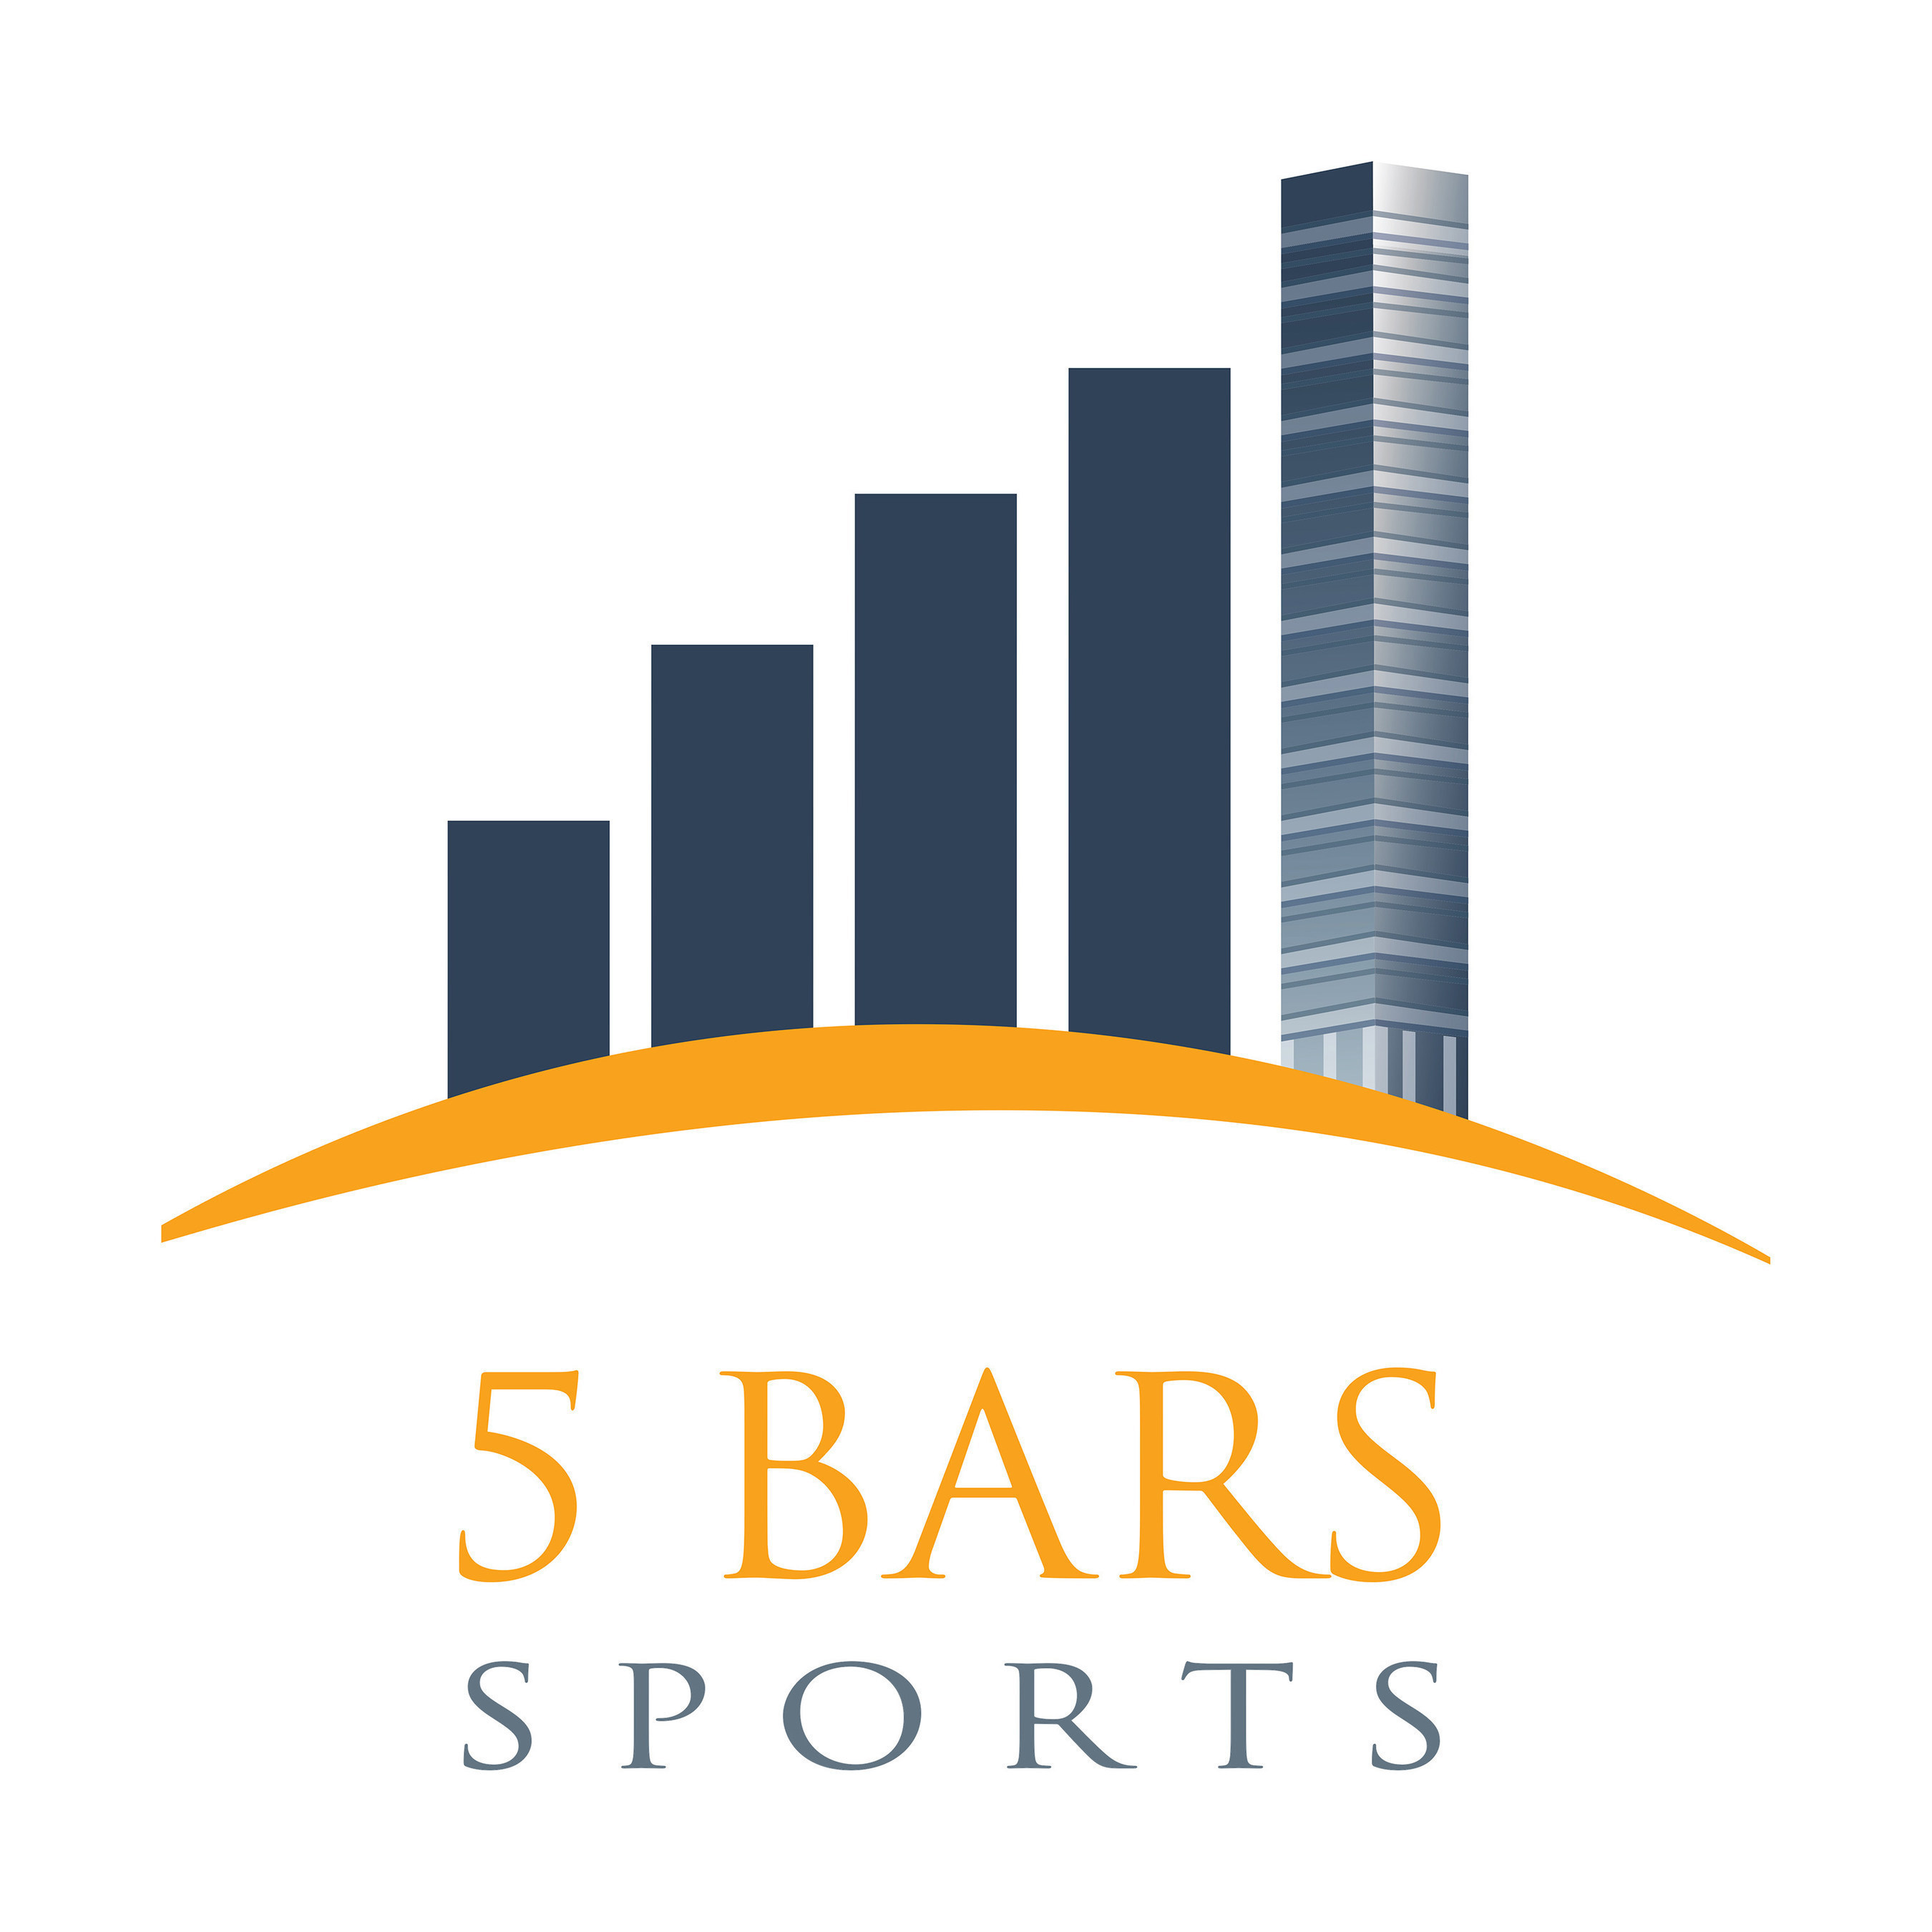 5 BARS Provides Advanced Wi-Fi for NRG Stadium Harris County / Houston, Texas